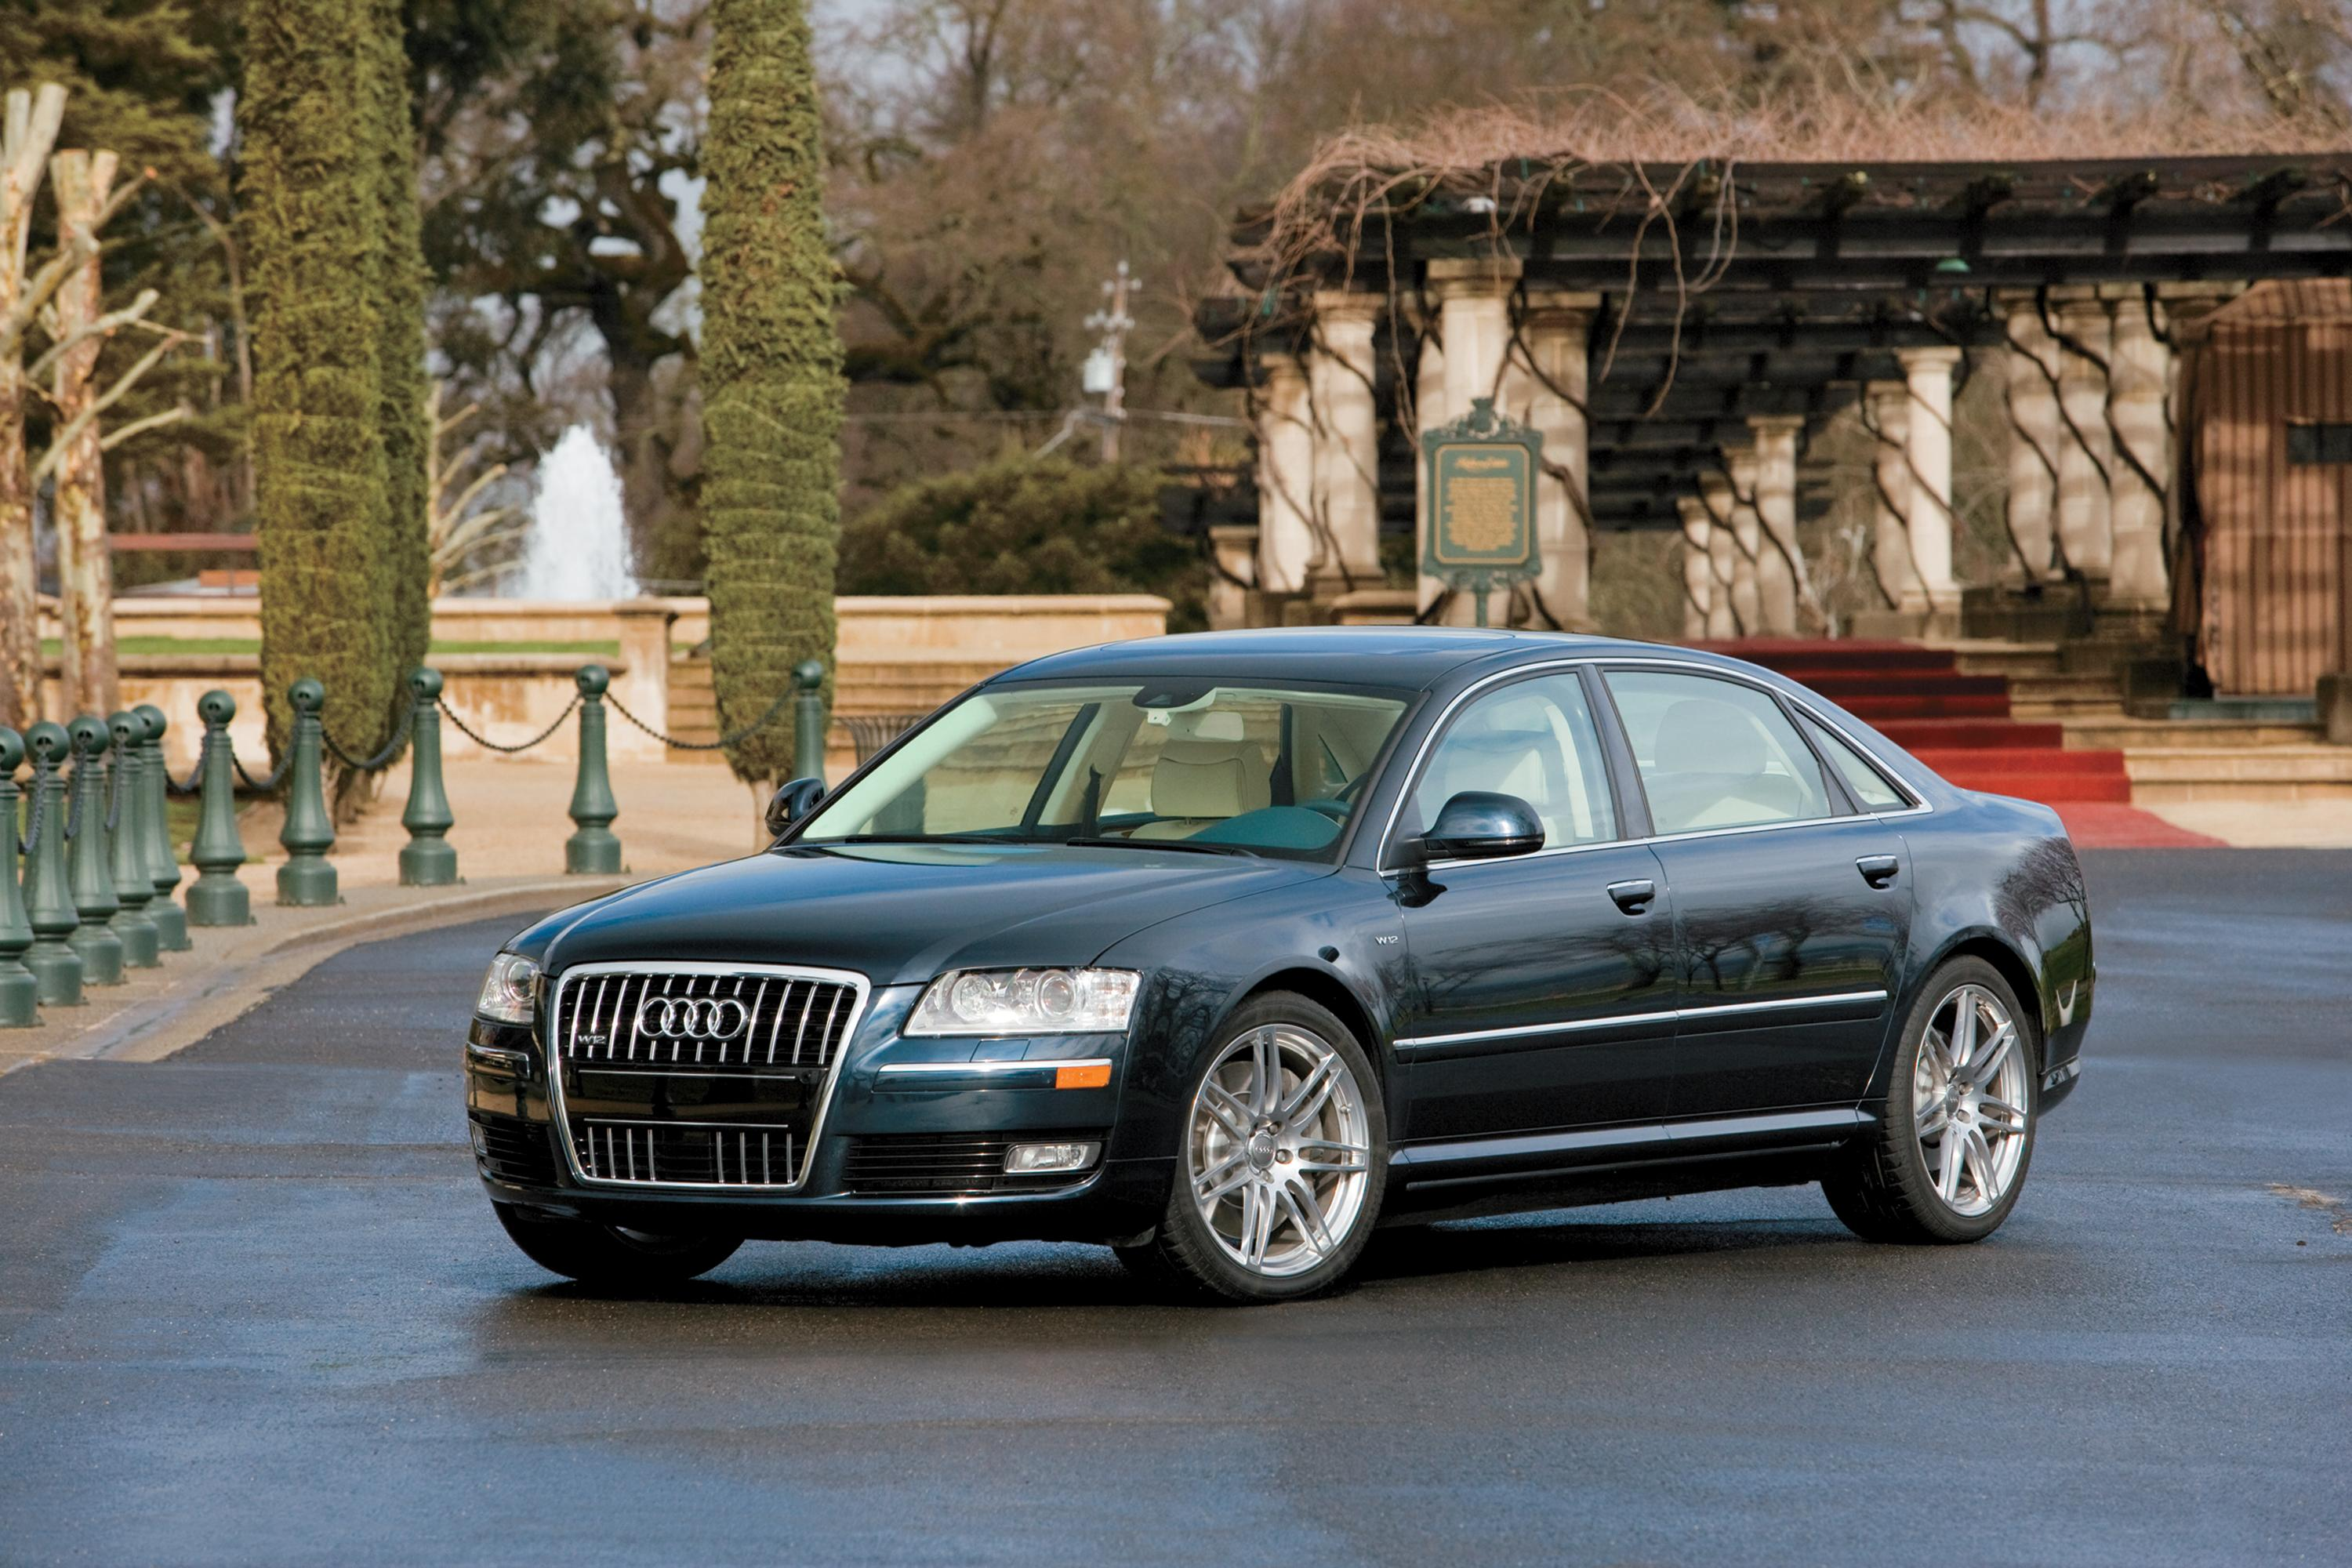 2008 audi a8 l picture 52800. Black Bedroom Furniture Sets. Home Design Ideas